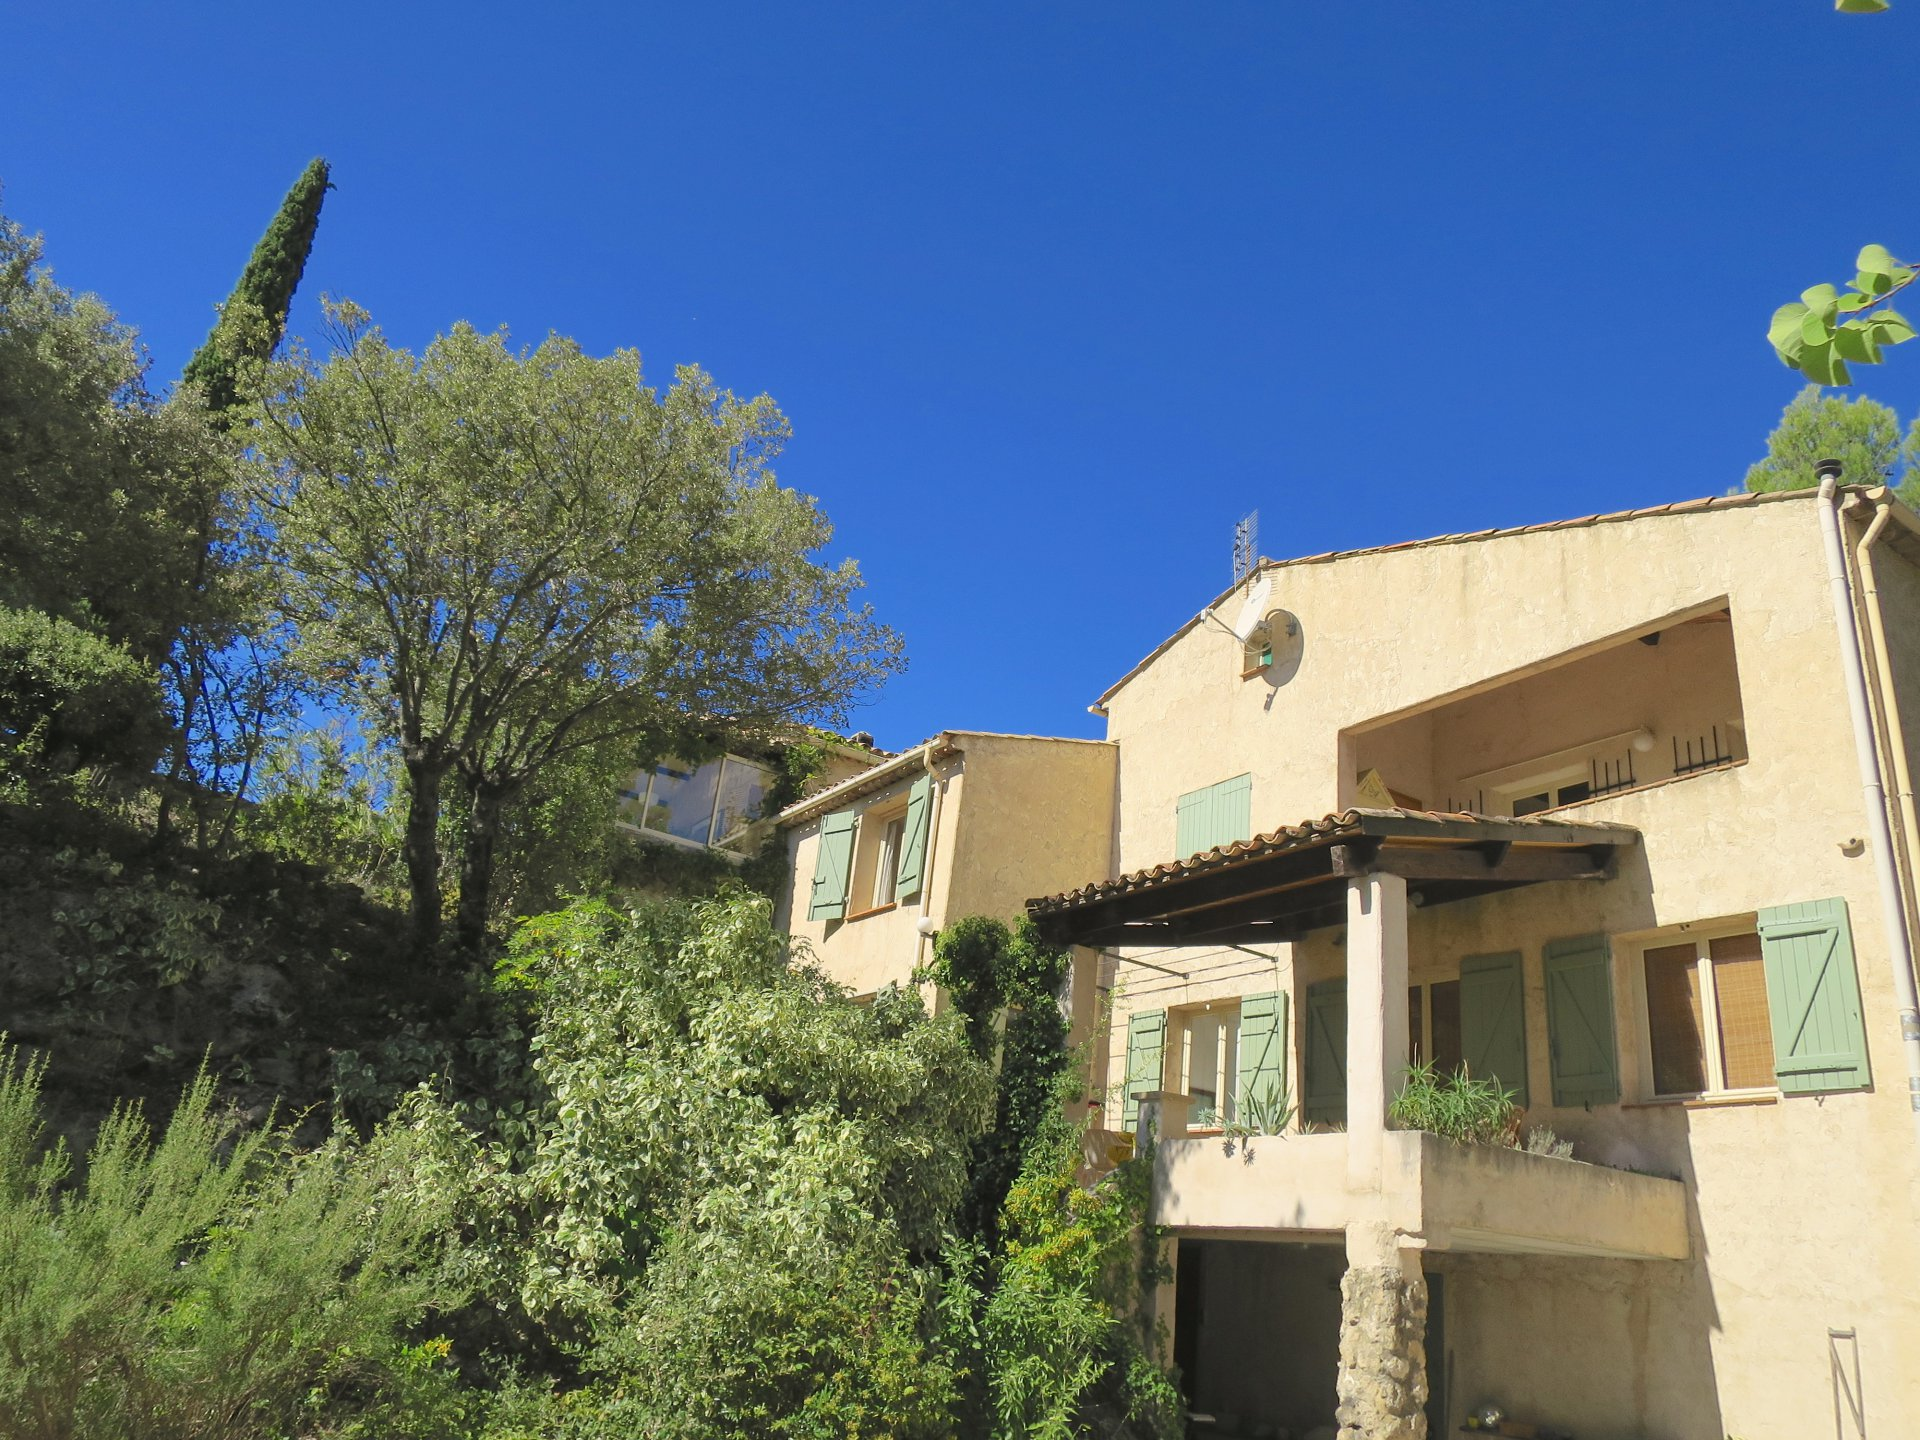 Ideal rental income, 3 gites and an appartment for the owner, oliveyard, pool on 10.000m2 land